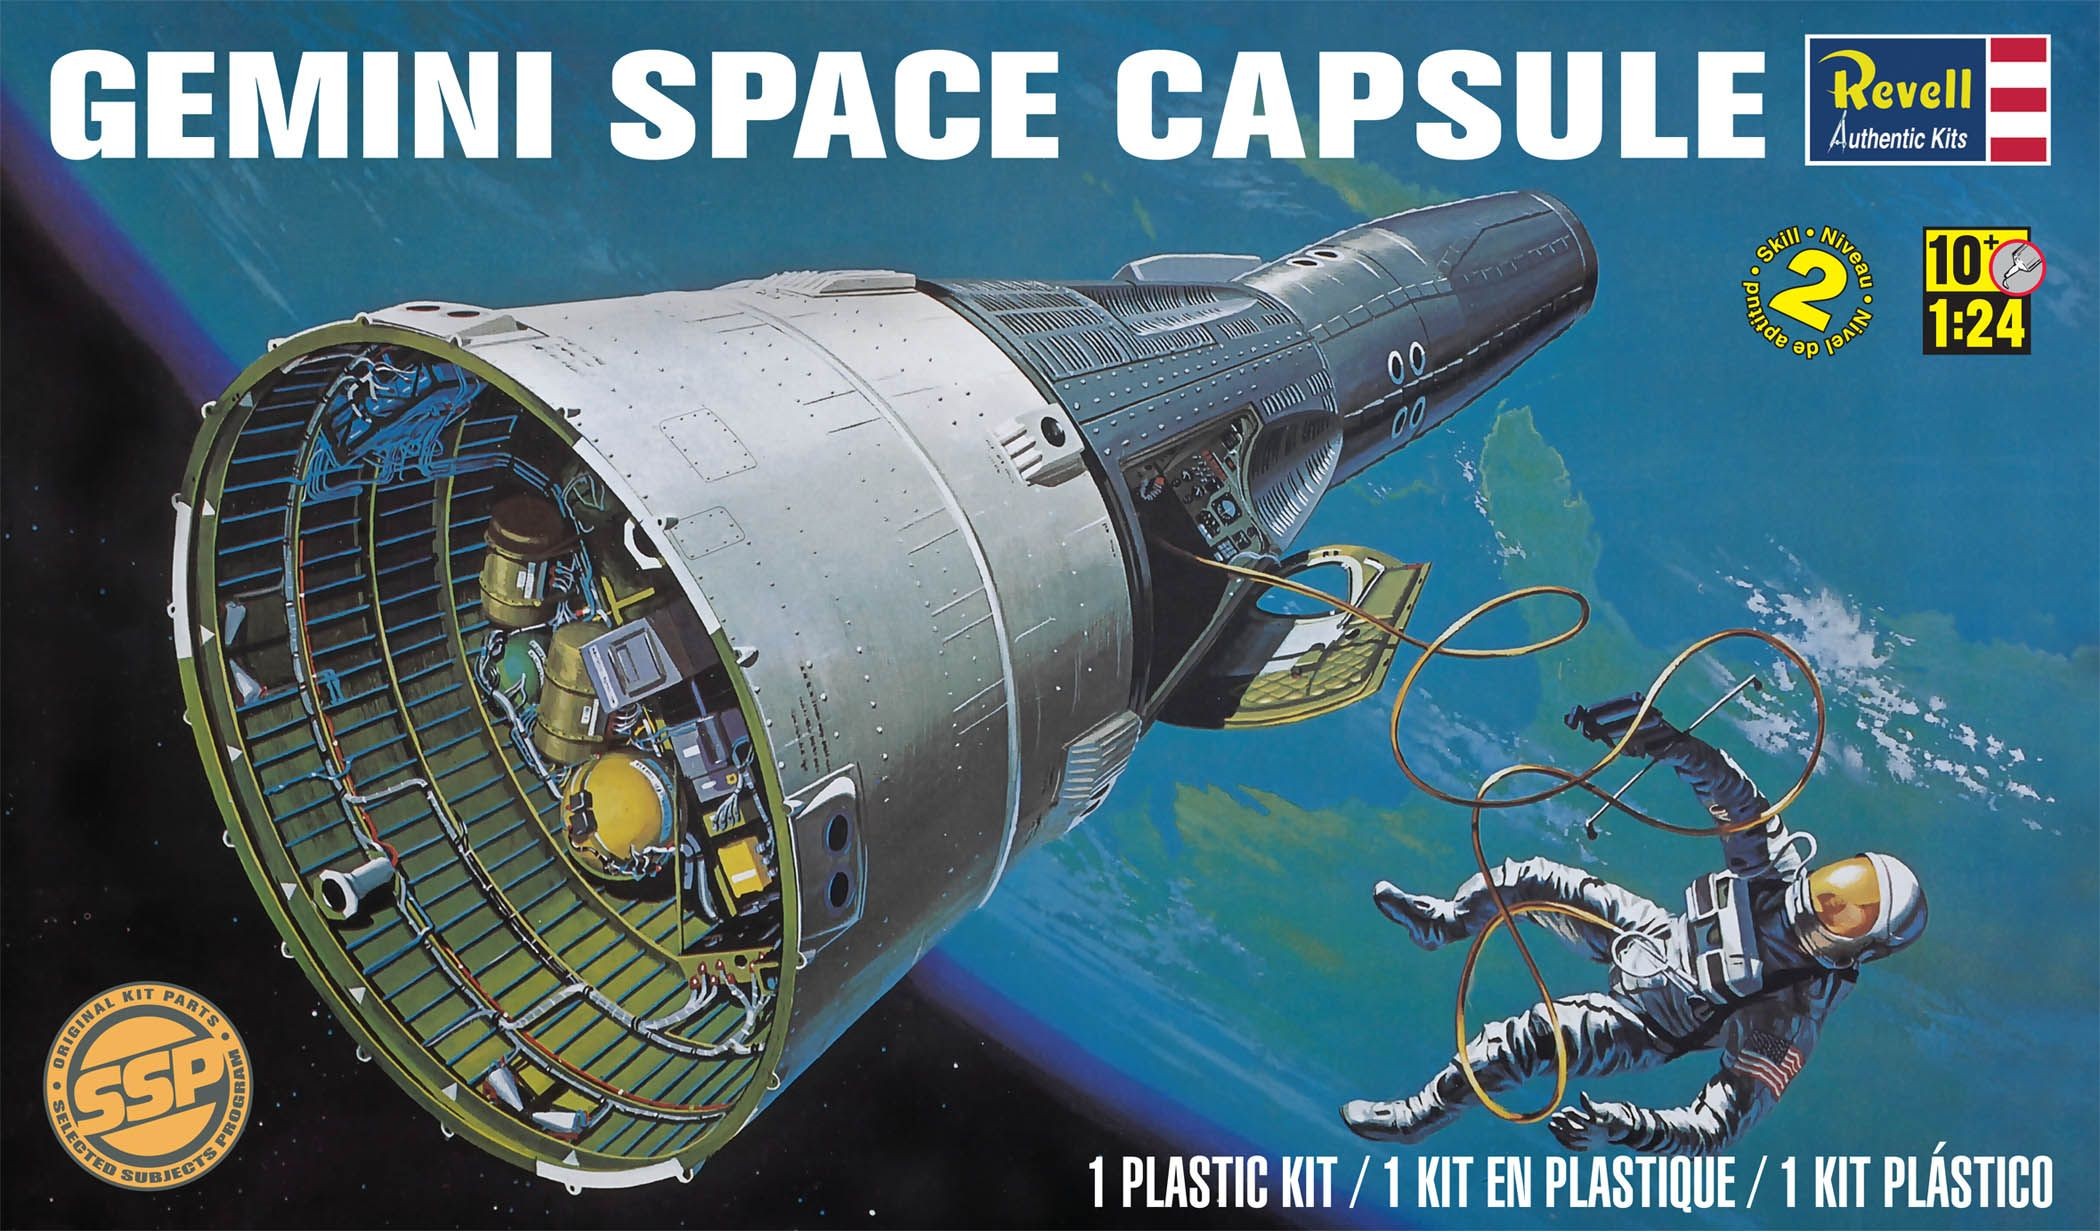 Gemini Space Capsule Plastic Model Kit From Revell Kit Features Two Seated Astronauts Opening Hatches Display St Plastic Model Kits Model Kit Plastic Models